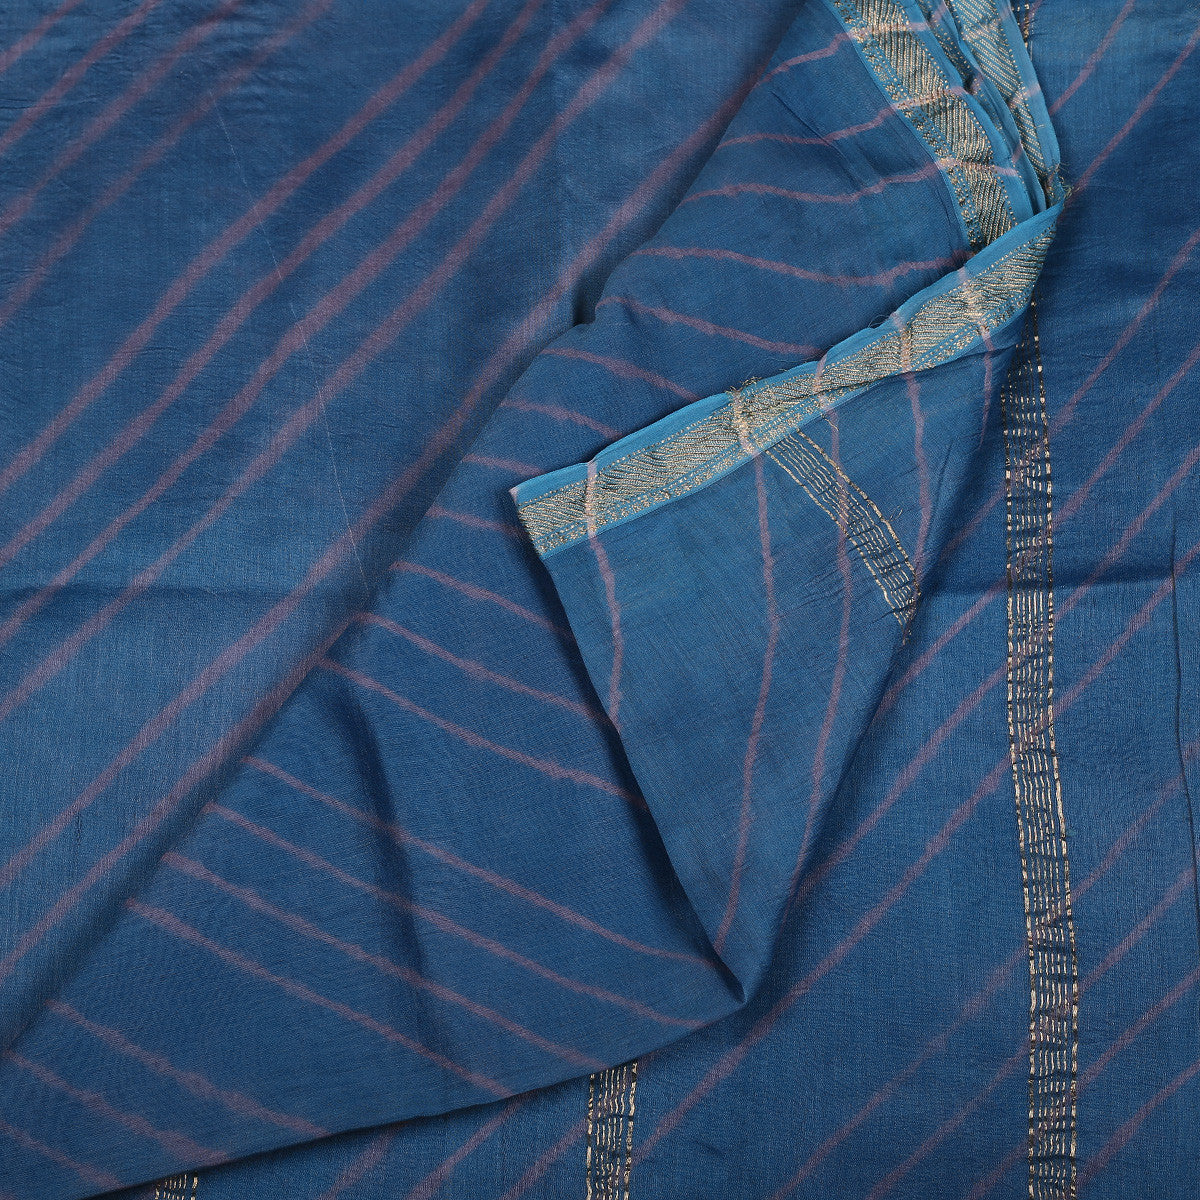 Jaipur Leheriya Tie and Dye Saree in Maheshwari Cotton Silk 1